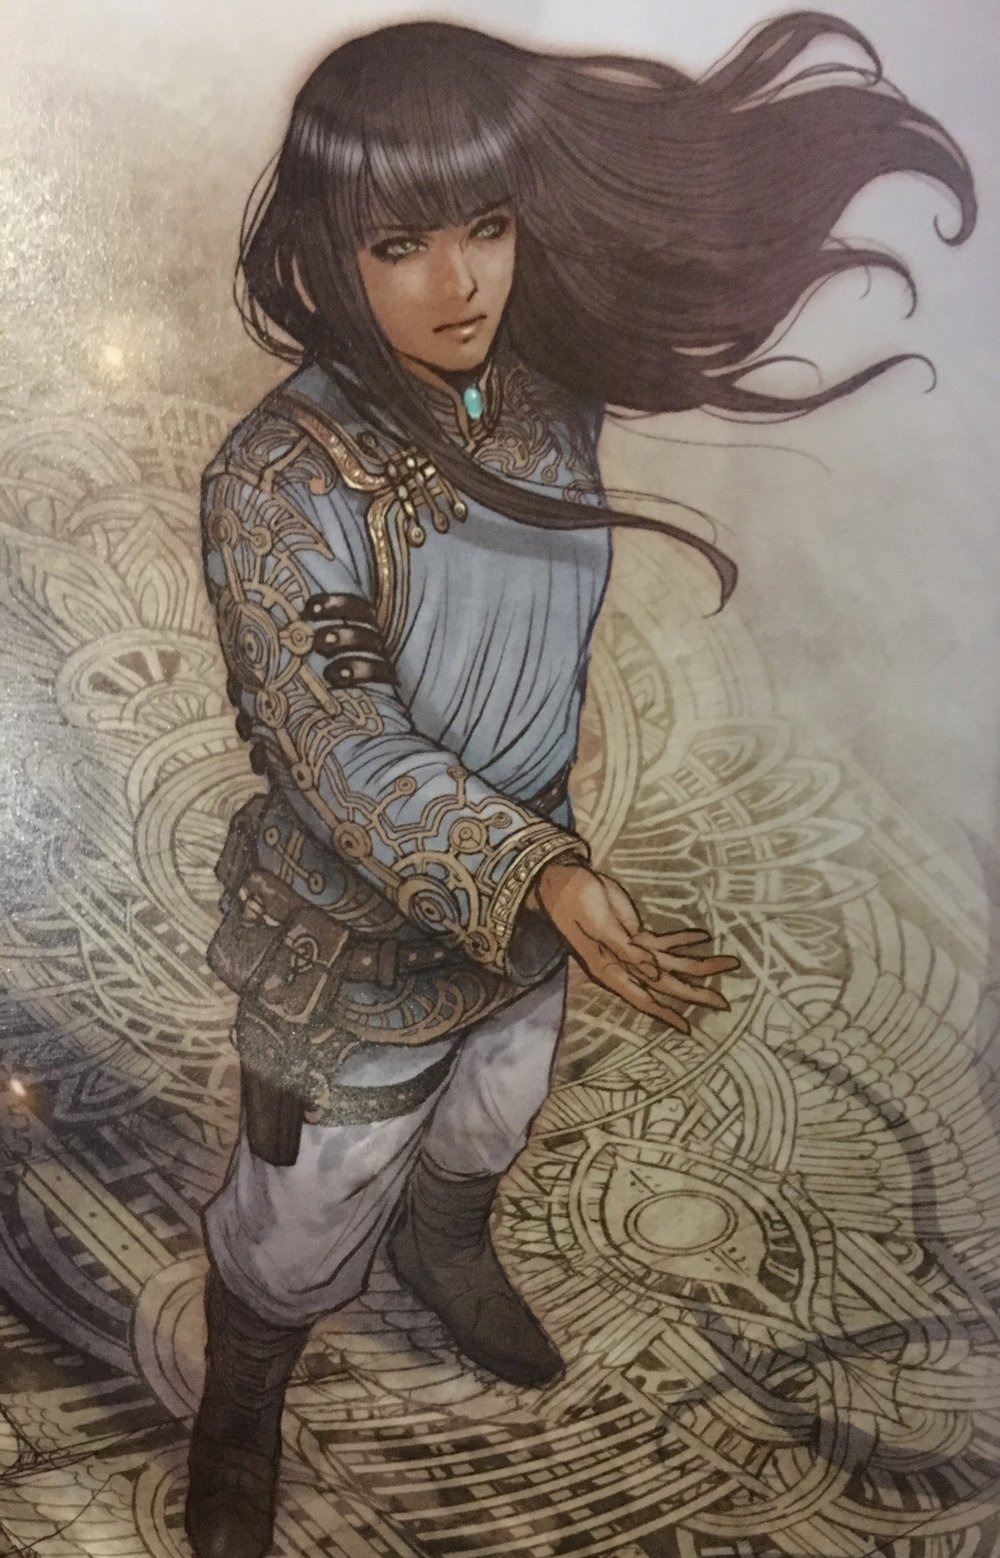 Piece of art from Monstress Vol.1